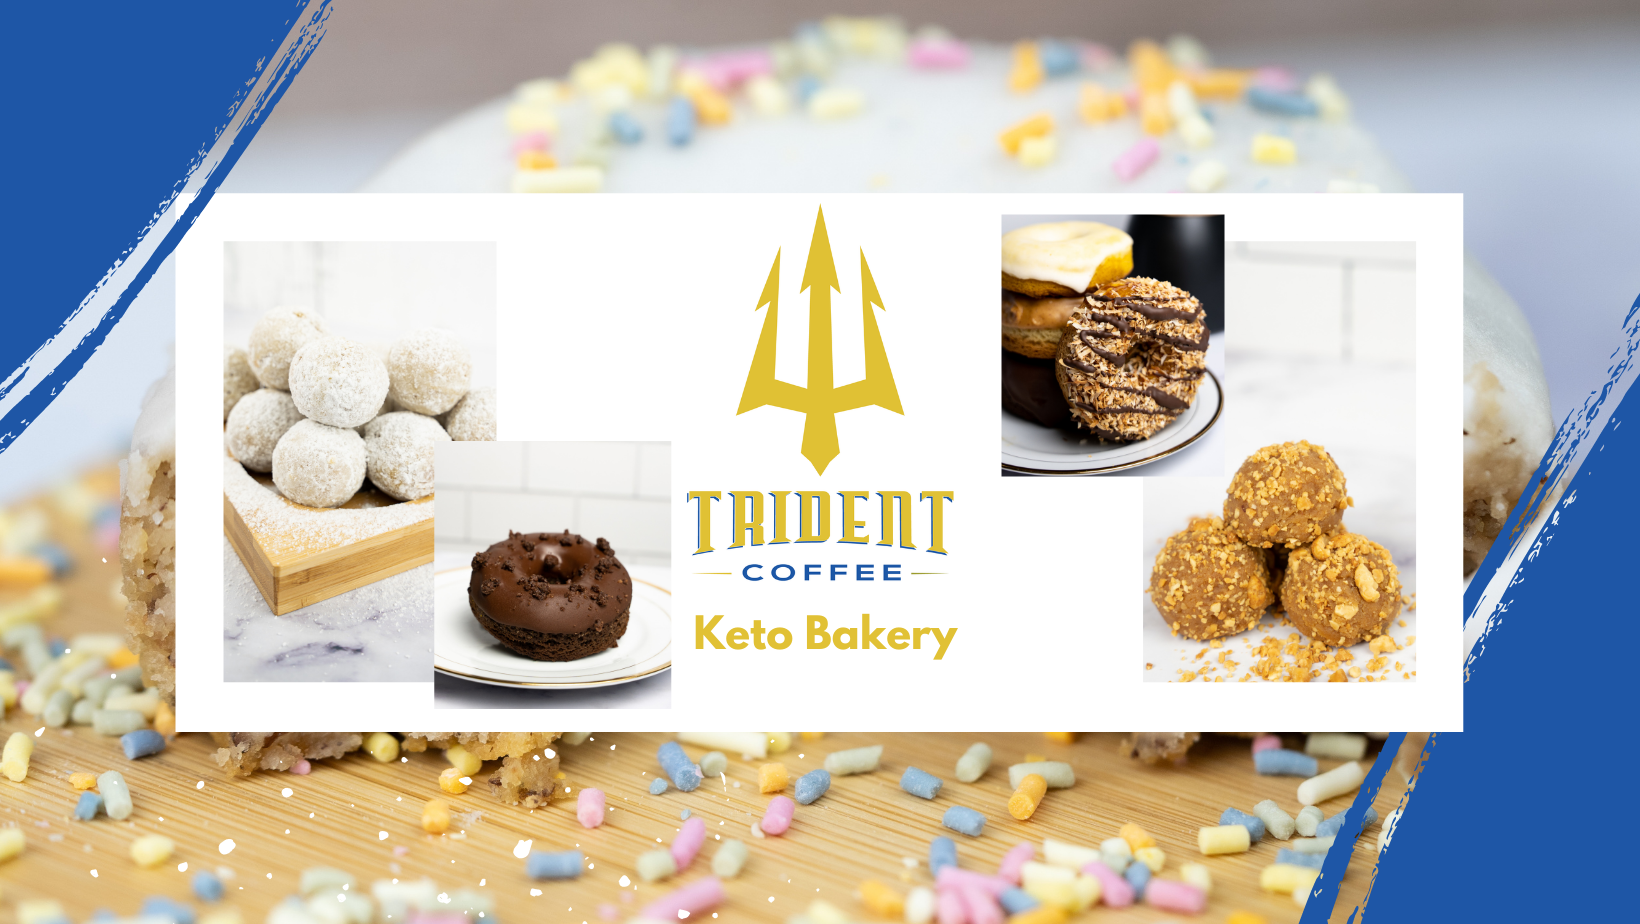 https://tridentcoffee.com/pages/trident-coffee-bakery